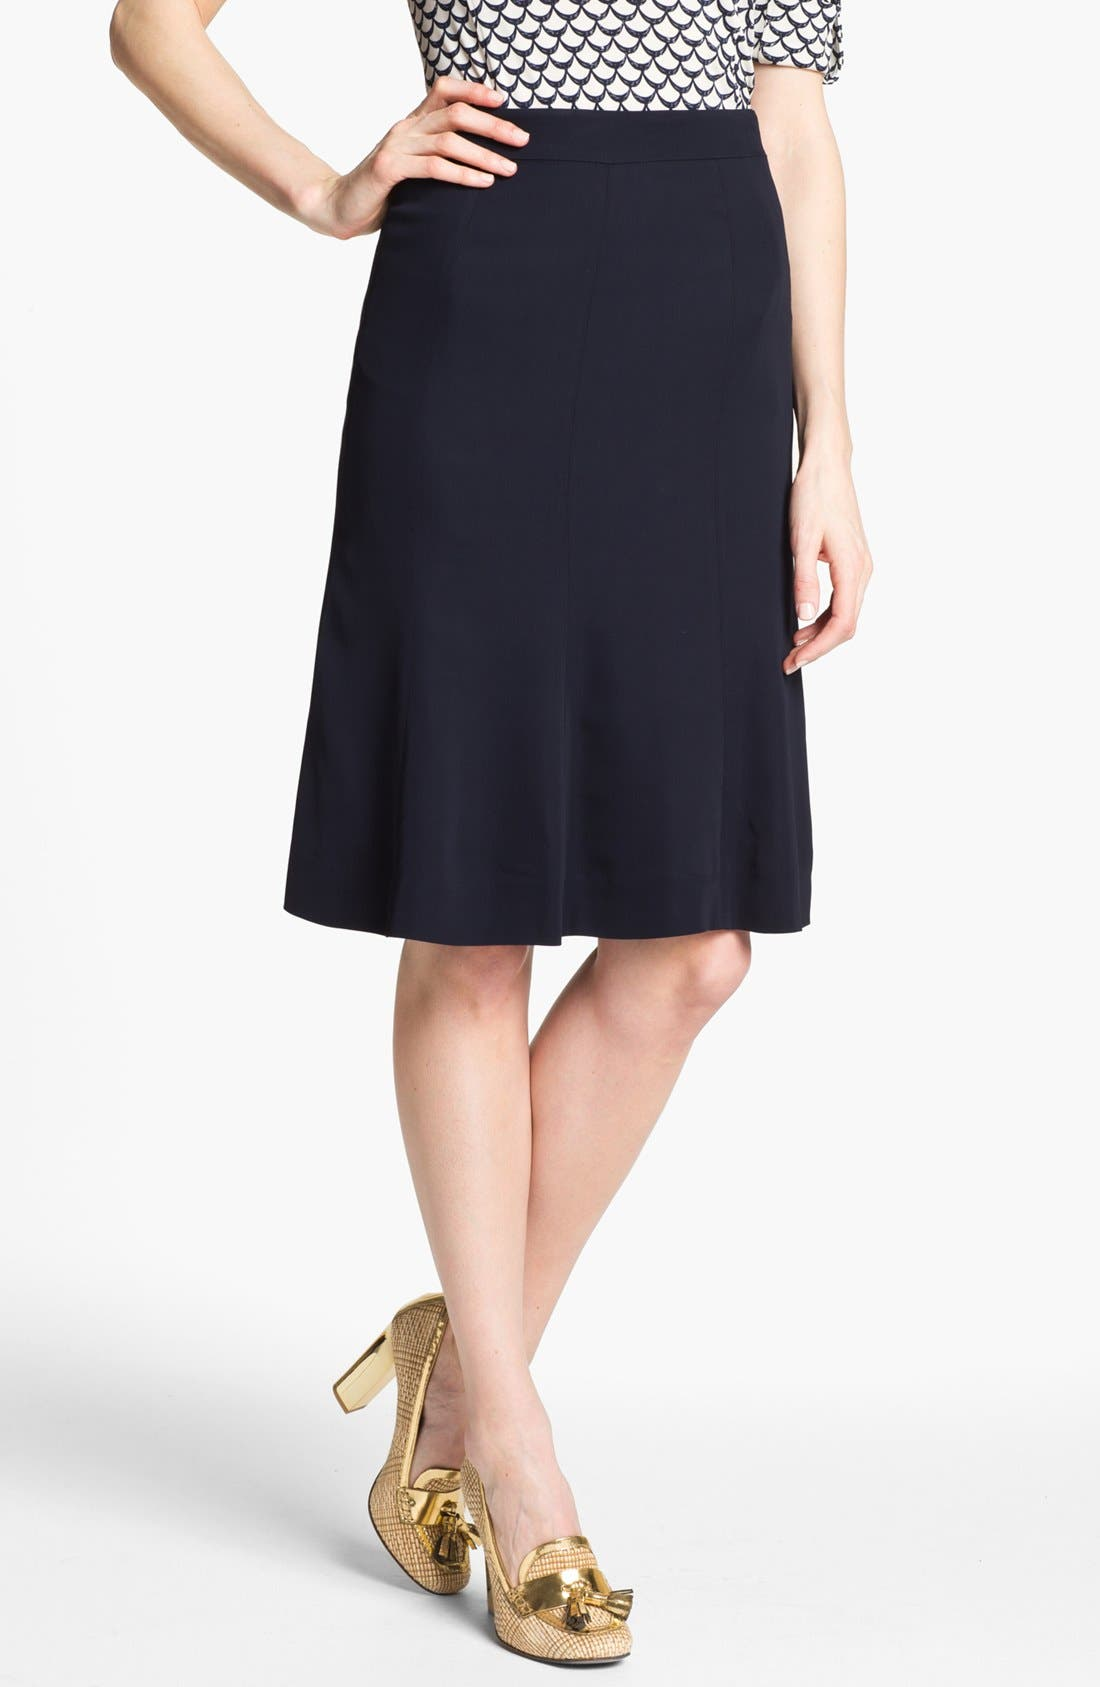 Alternate Image 1 Selected - Tory Burch 'Piera' Skirt